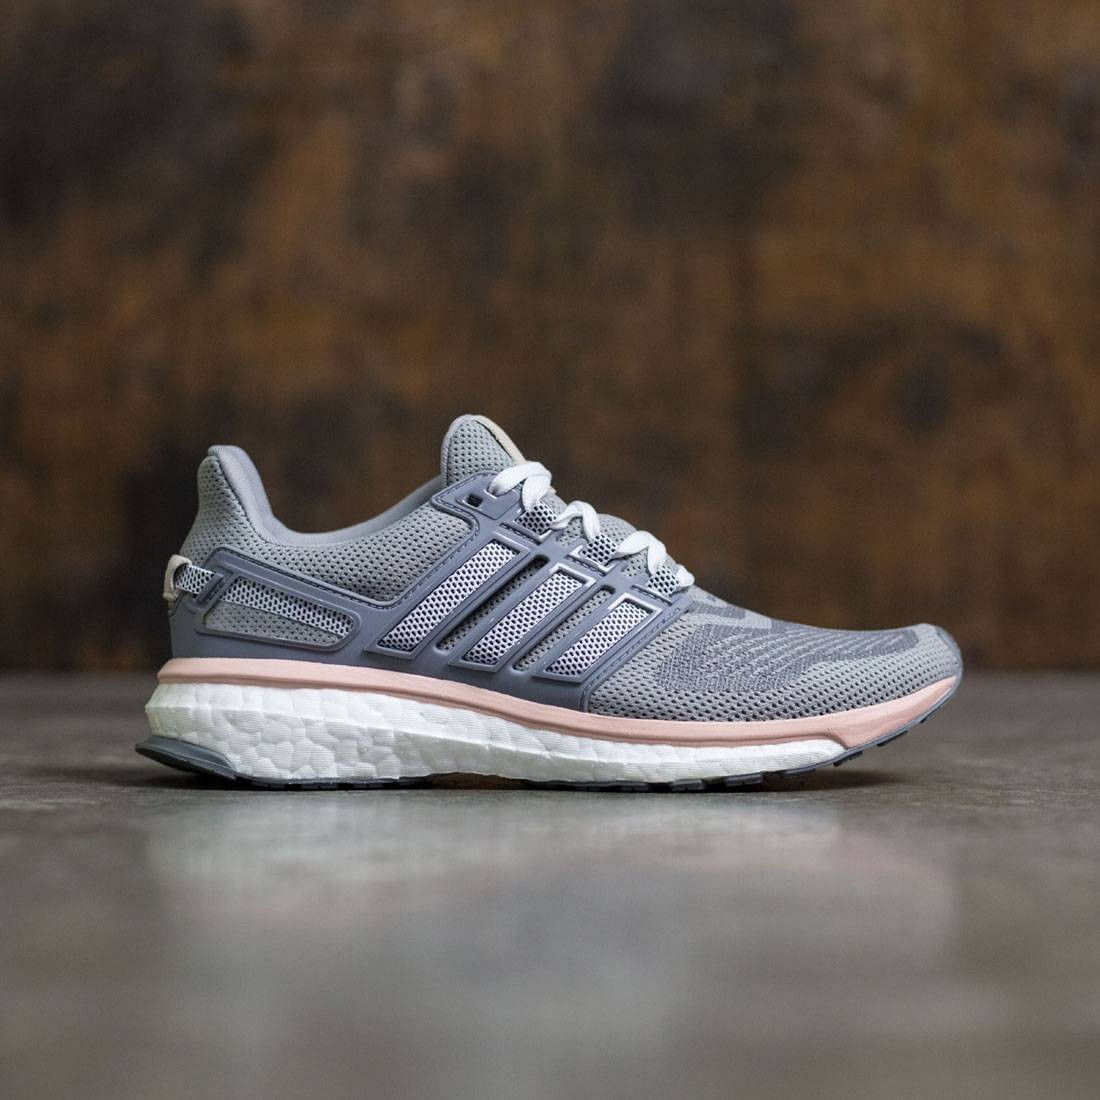 Borradura Térmico recuperar  Adidas Women Energy Boost 3 gray mid grey night navy vapour pink